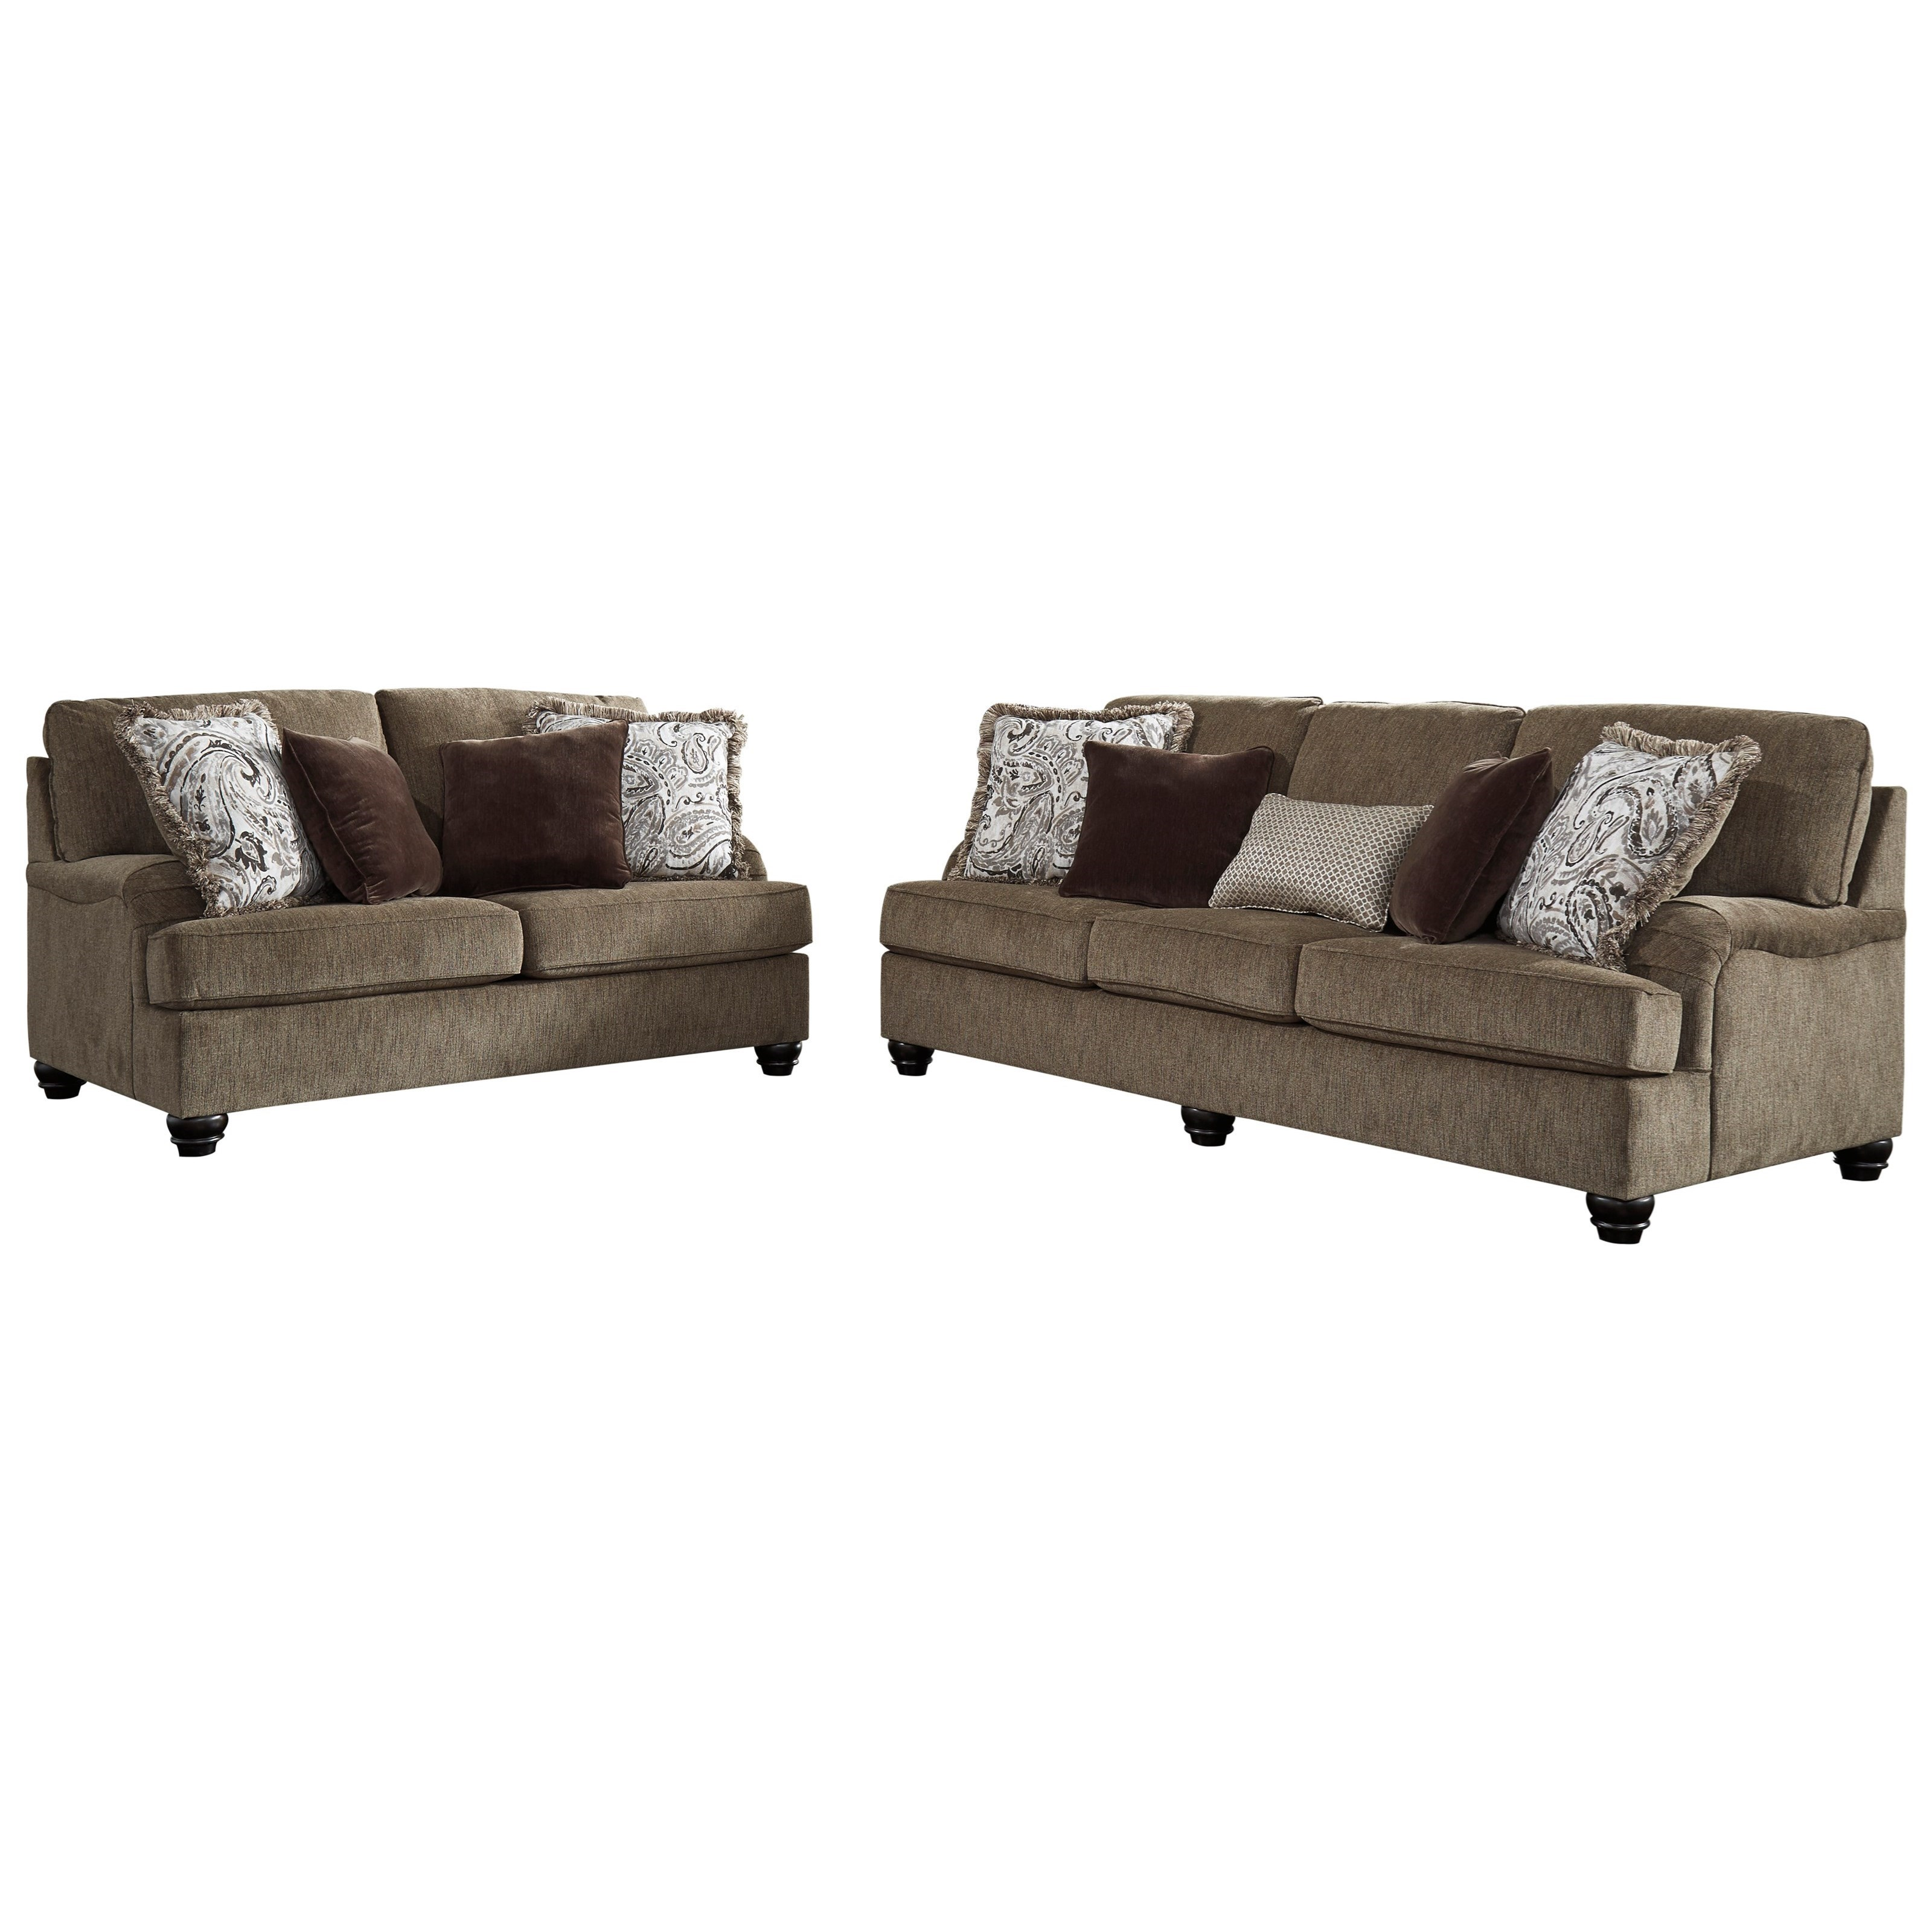 Braemar Stationary Living Room Group by Benchcraft at Standard Furniture